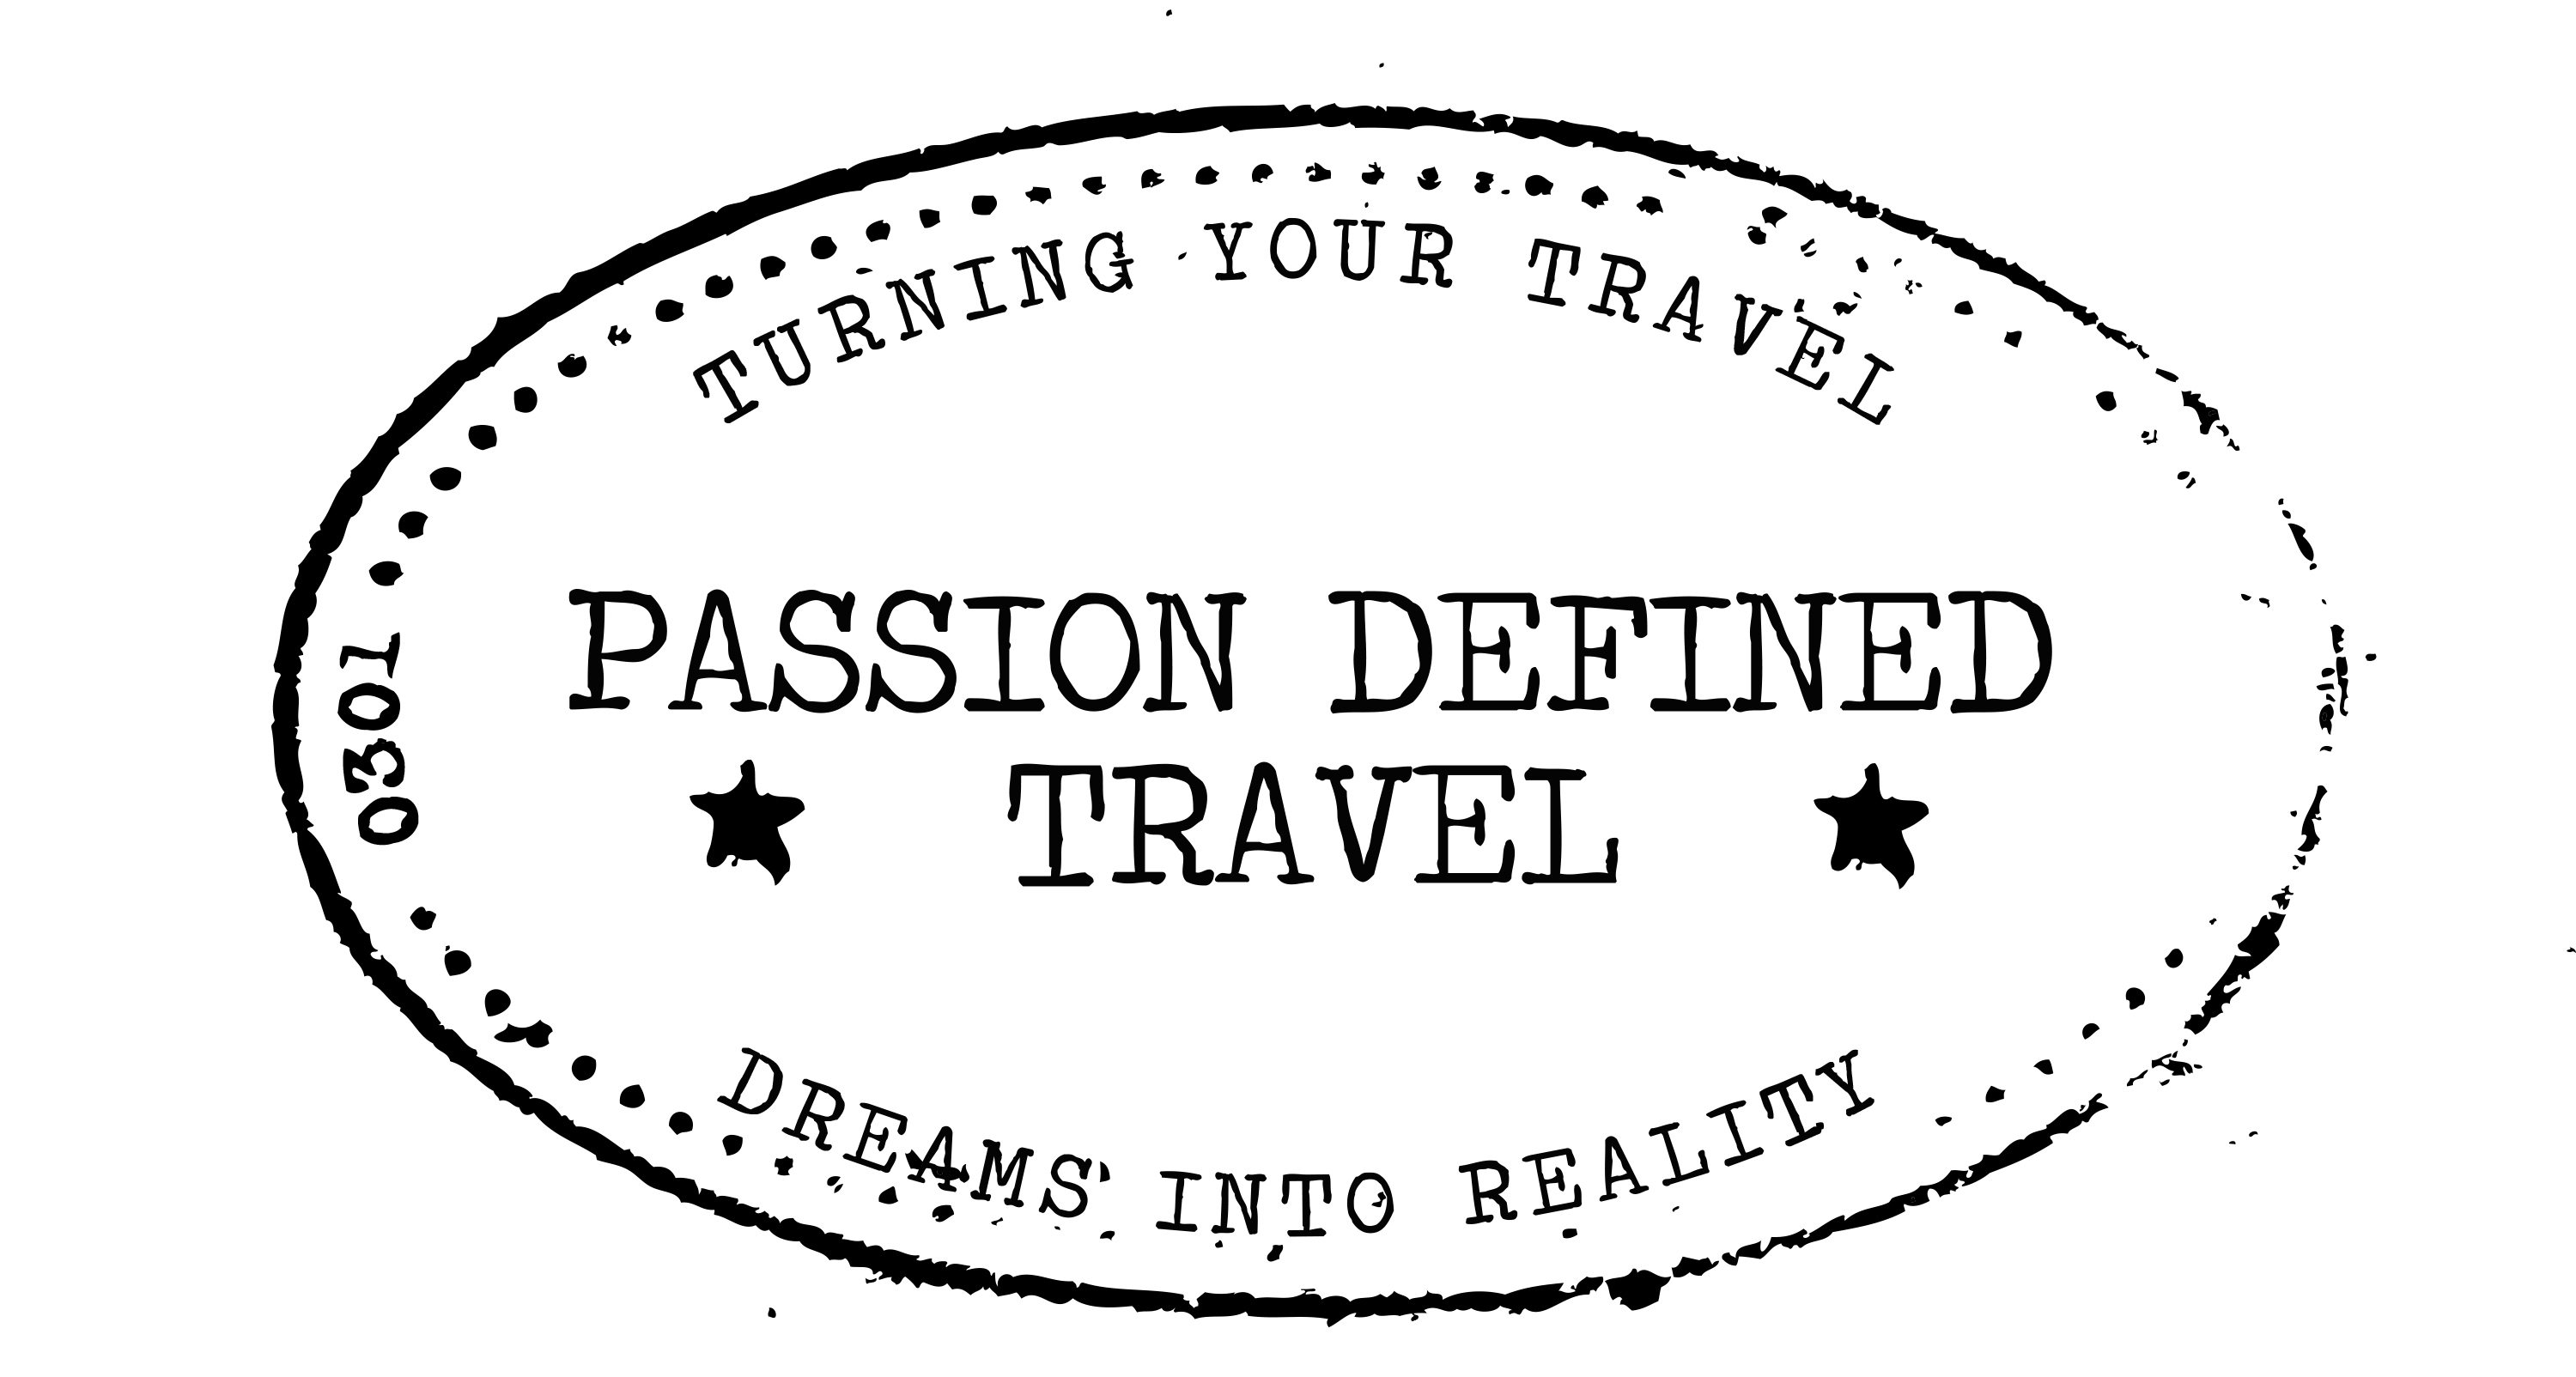 Passion Defined Travel